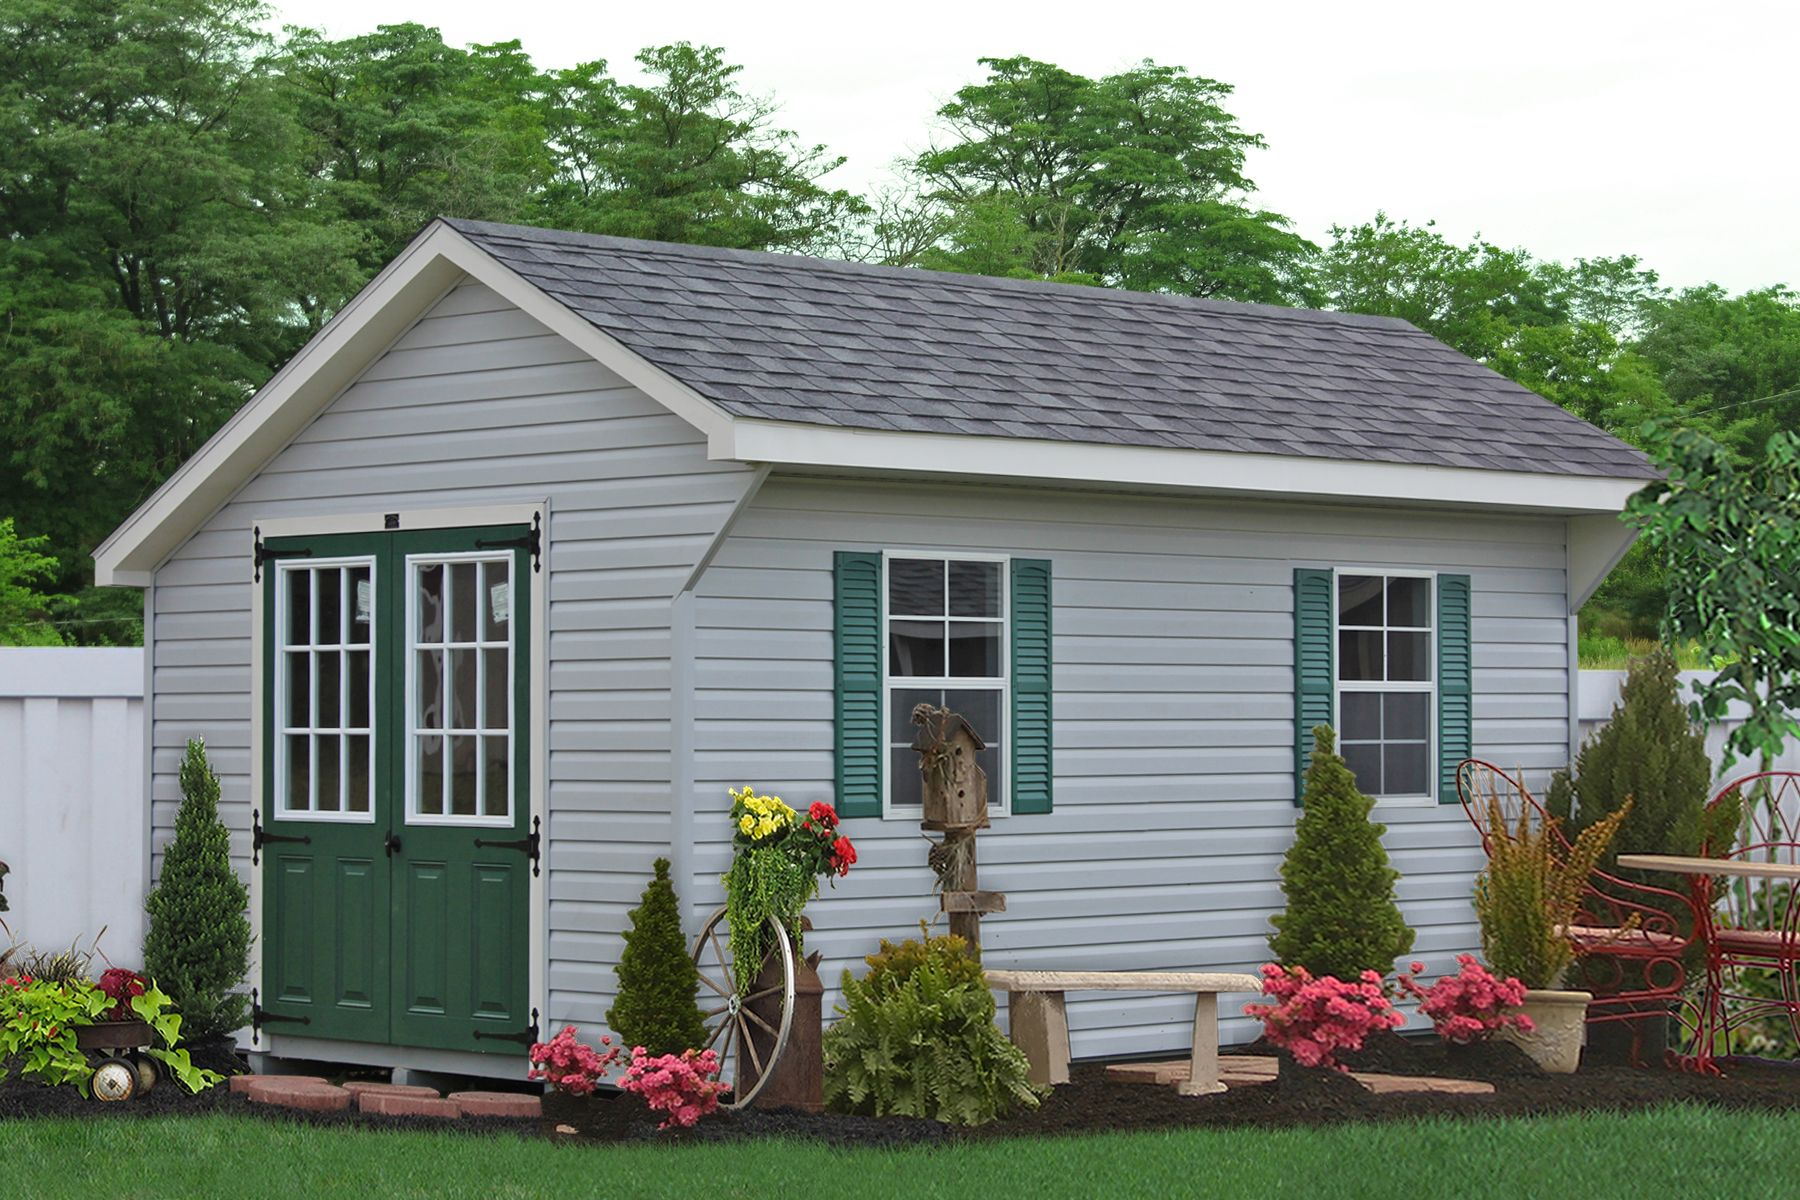 Modular Prebuilt Garages For Sale From Lancaster Pa: Vinyl Sided Shed For Sale In Lancaster, PA. Buy A Vinyl